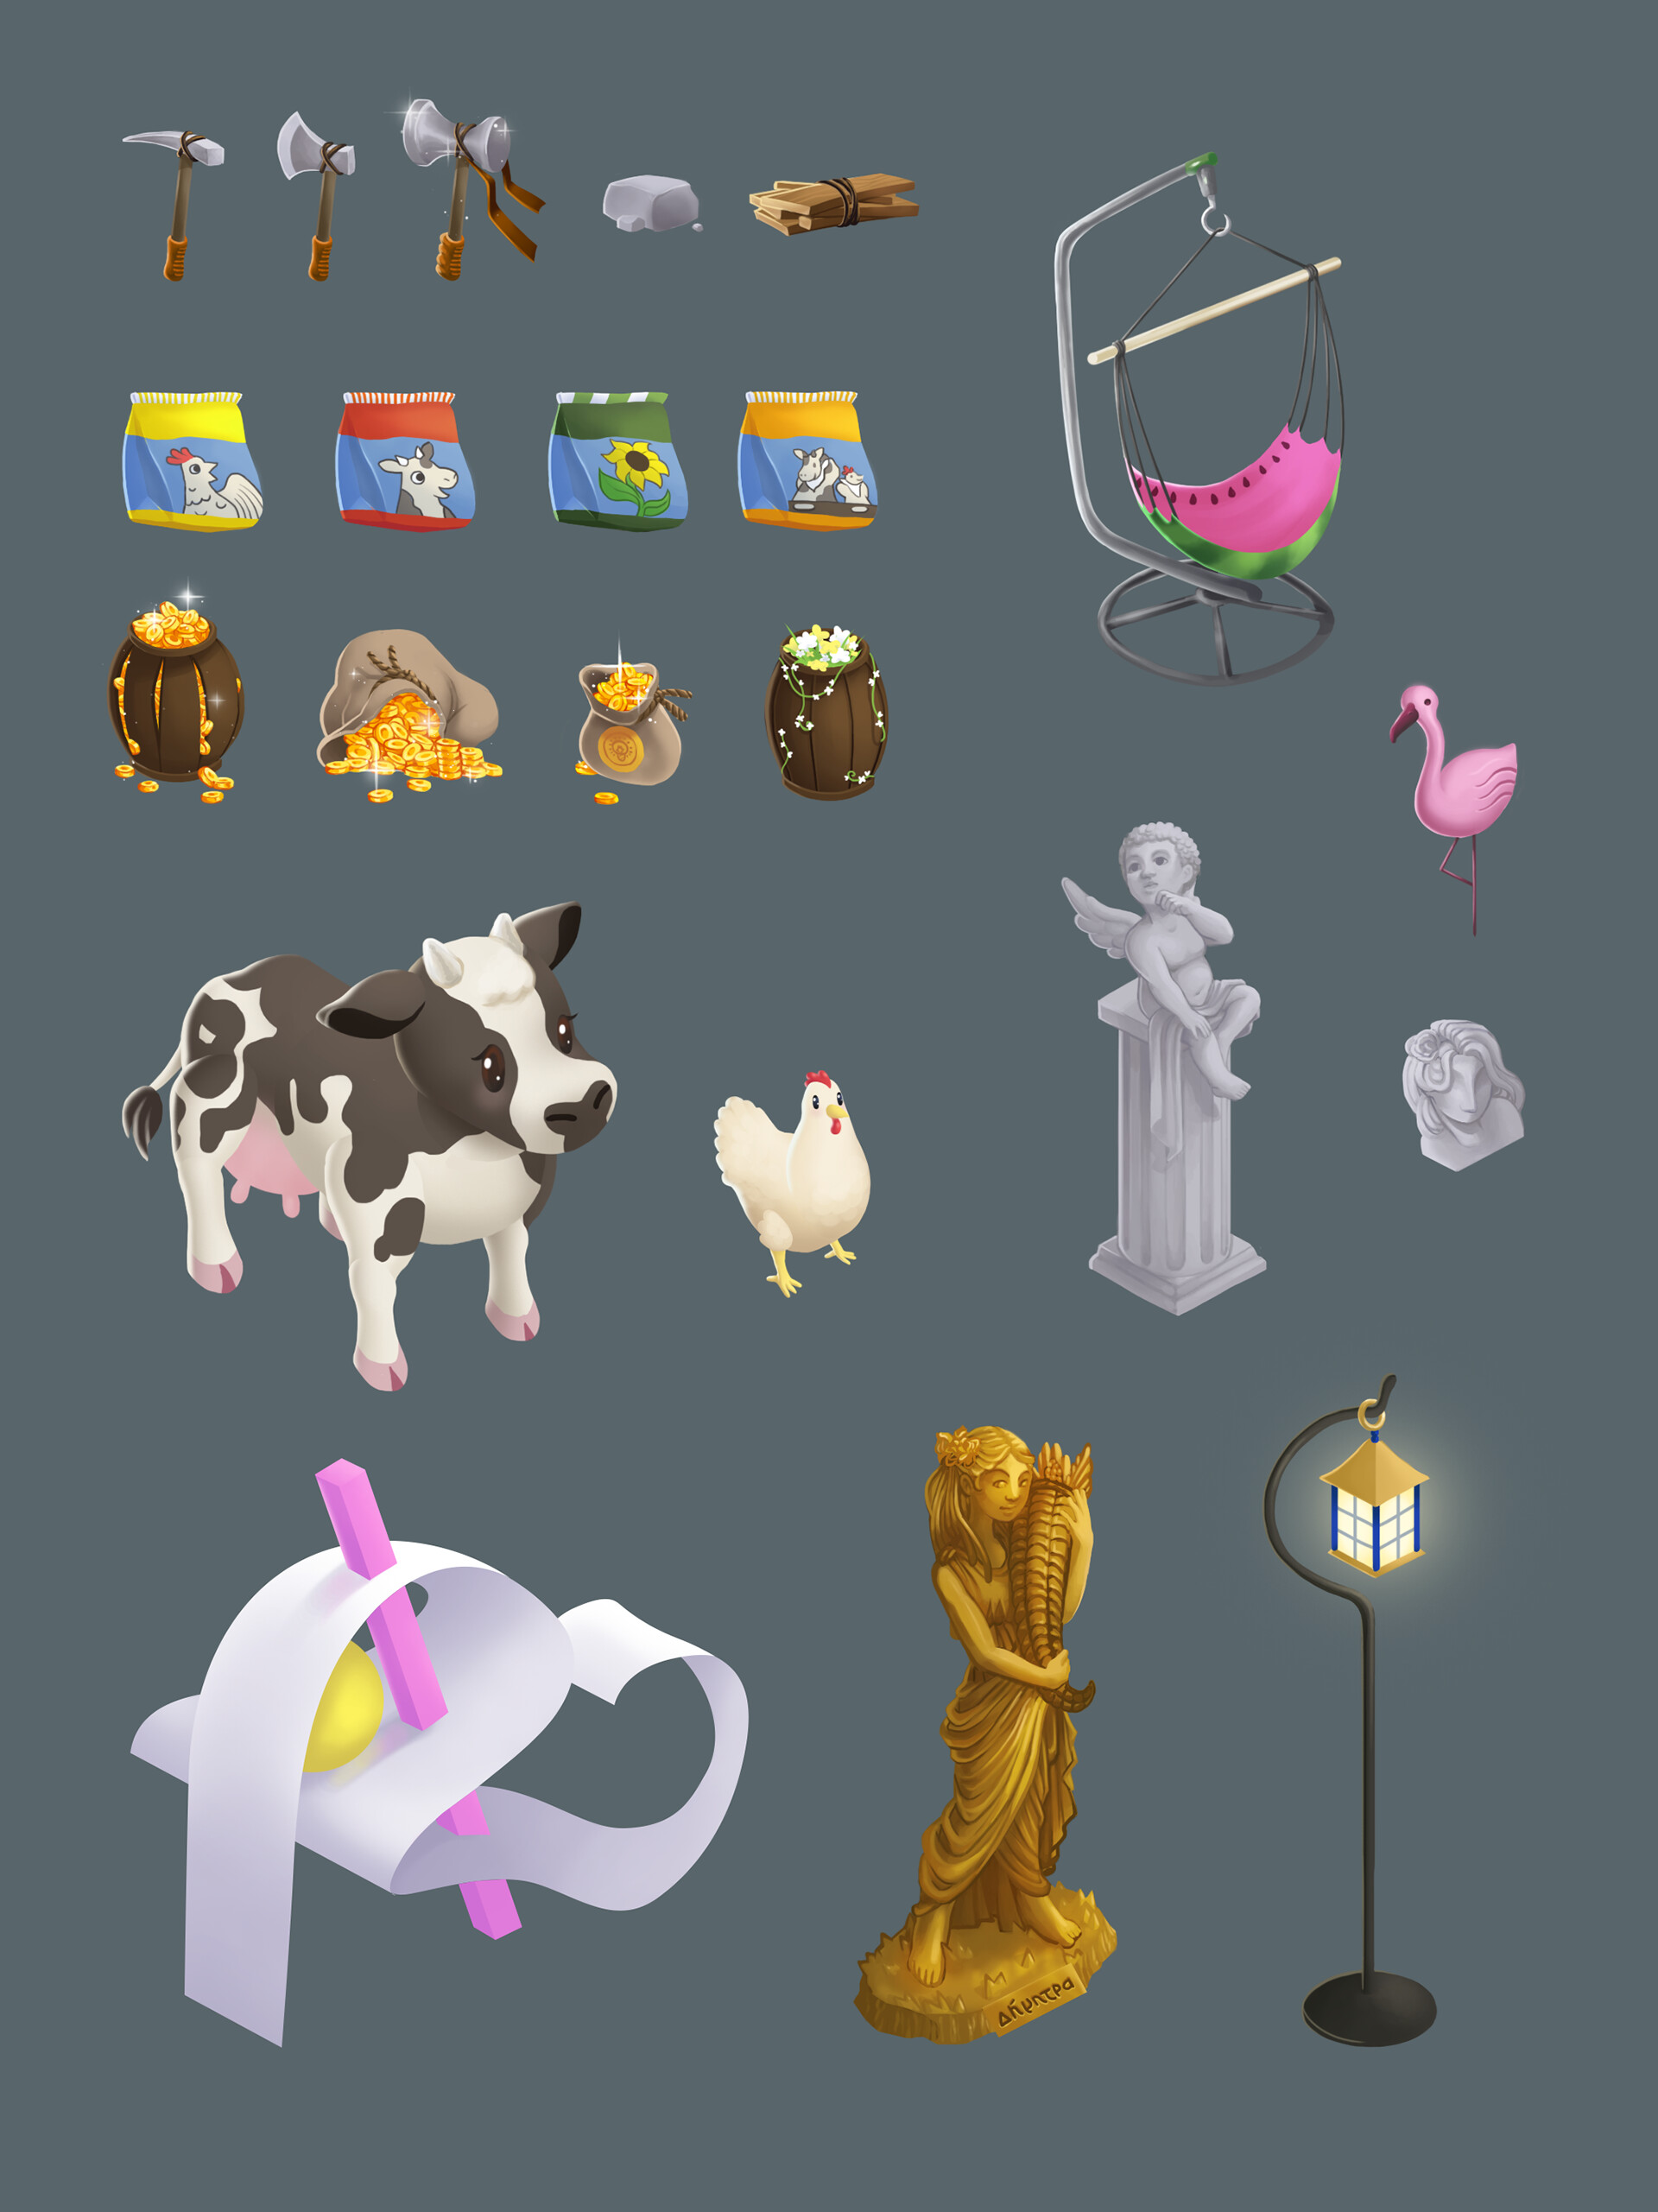 Tools, props, animals and decoration paintings